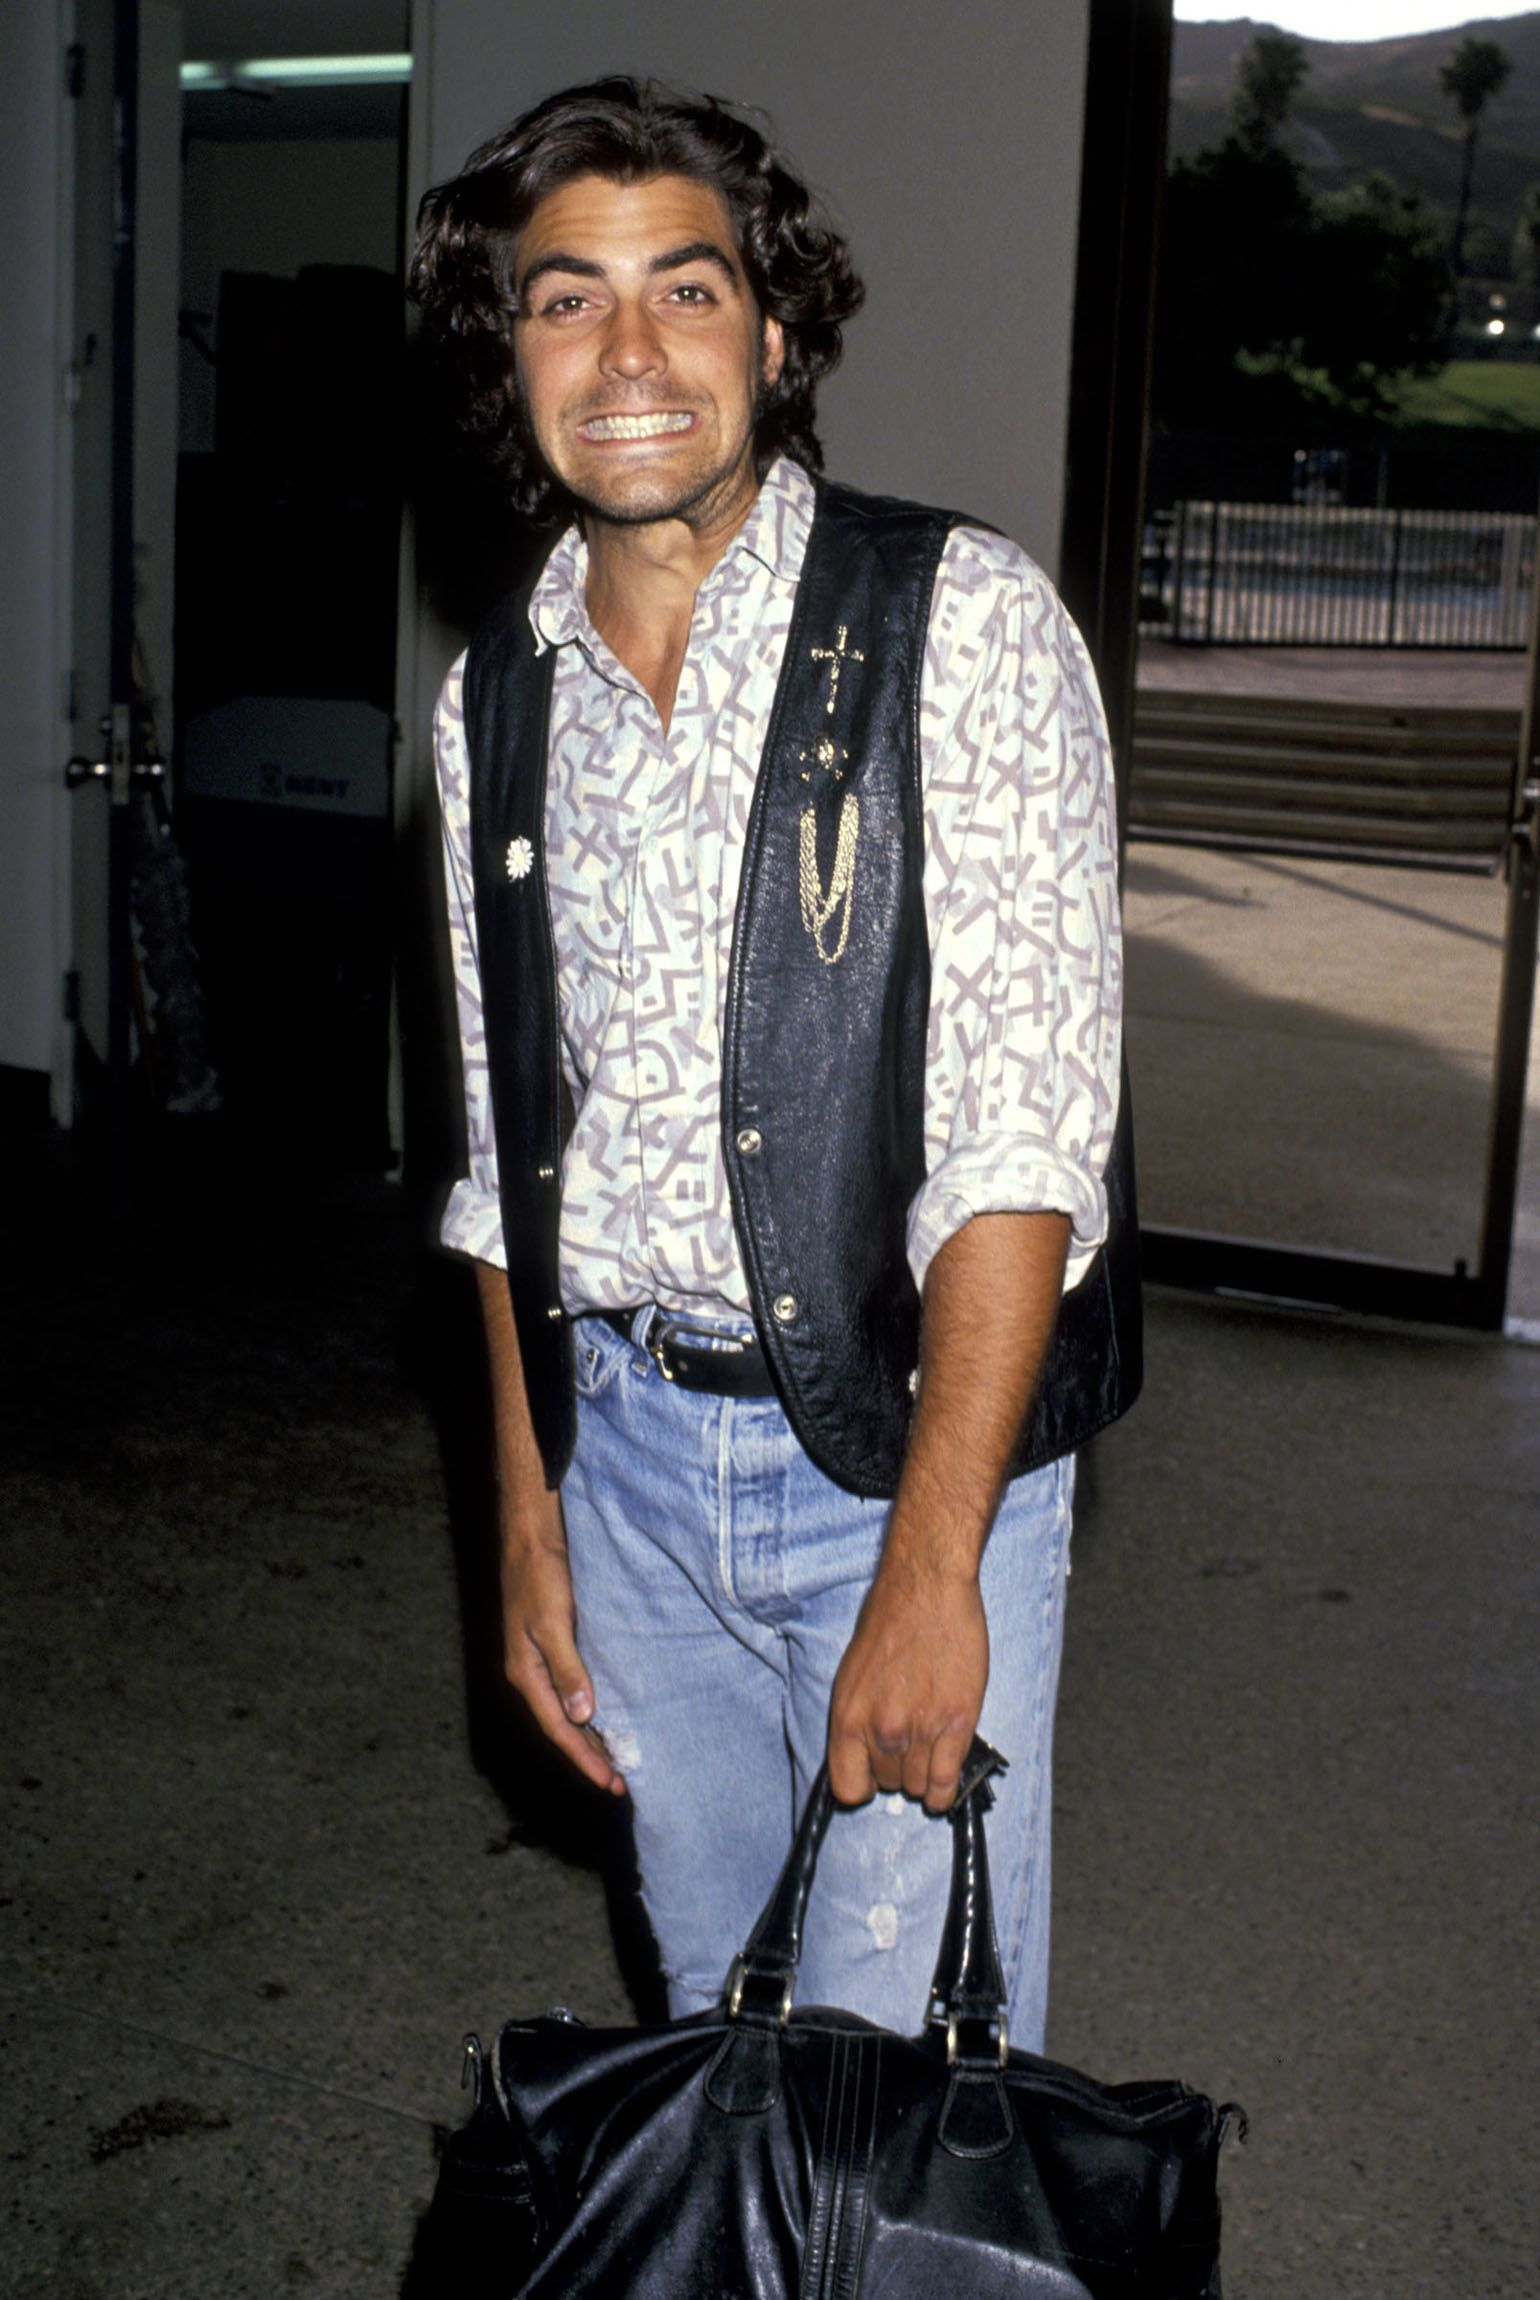 Clooney attending a celebrity basketball game on June 24, 1989 in Malibu, Ca.